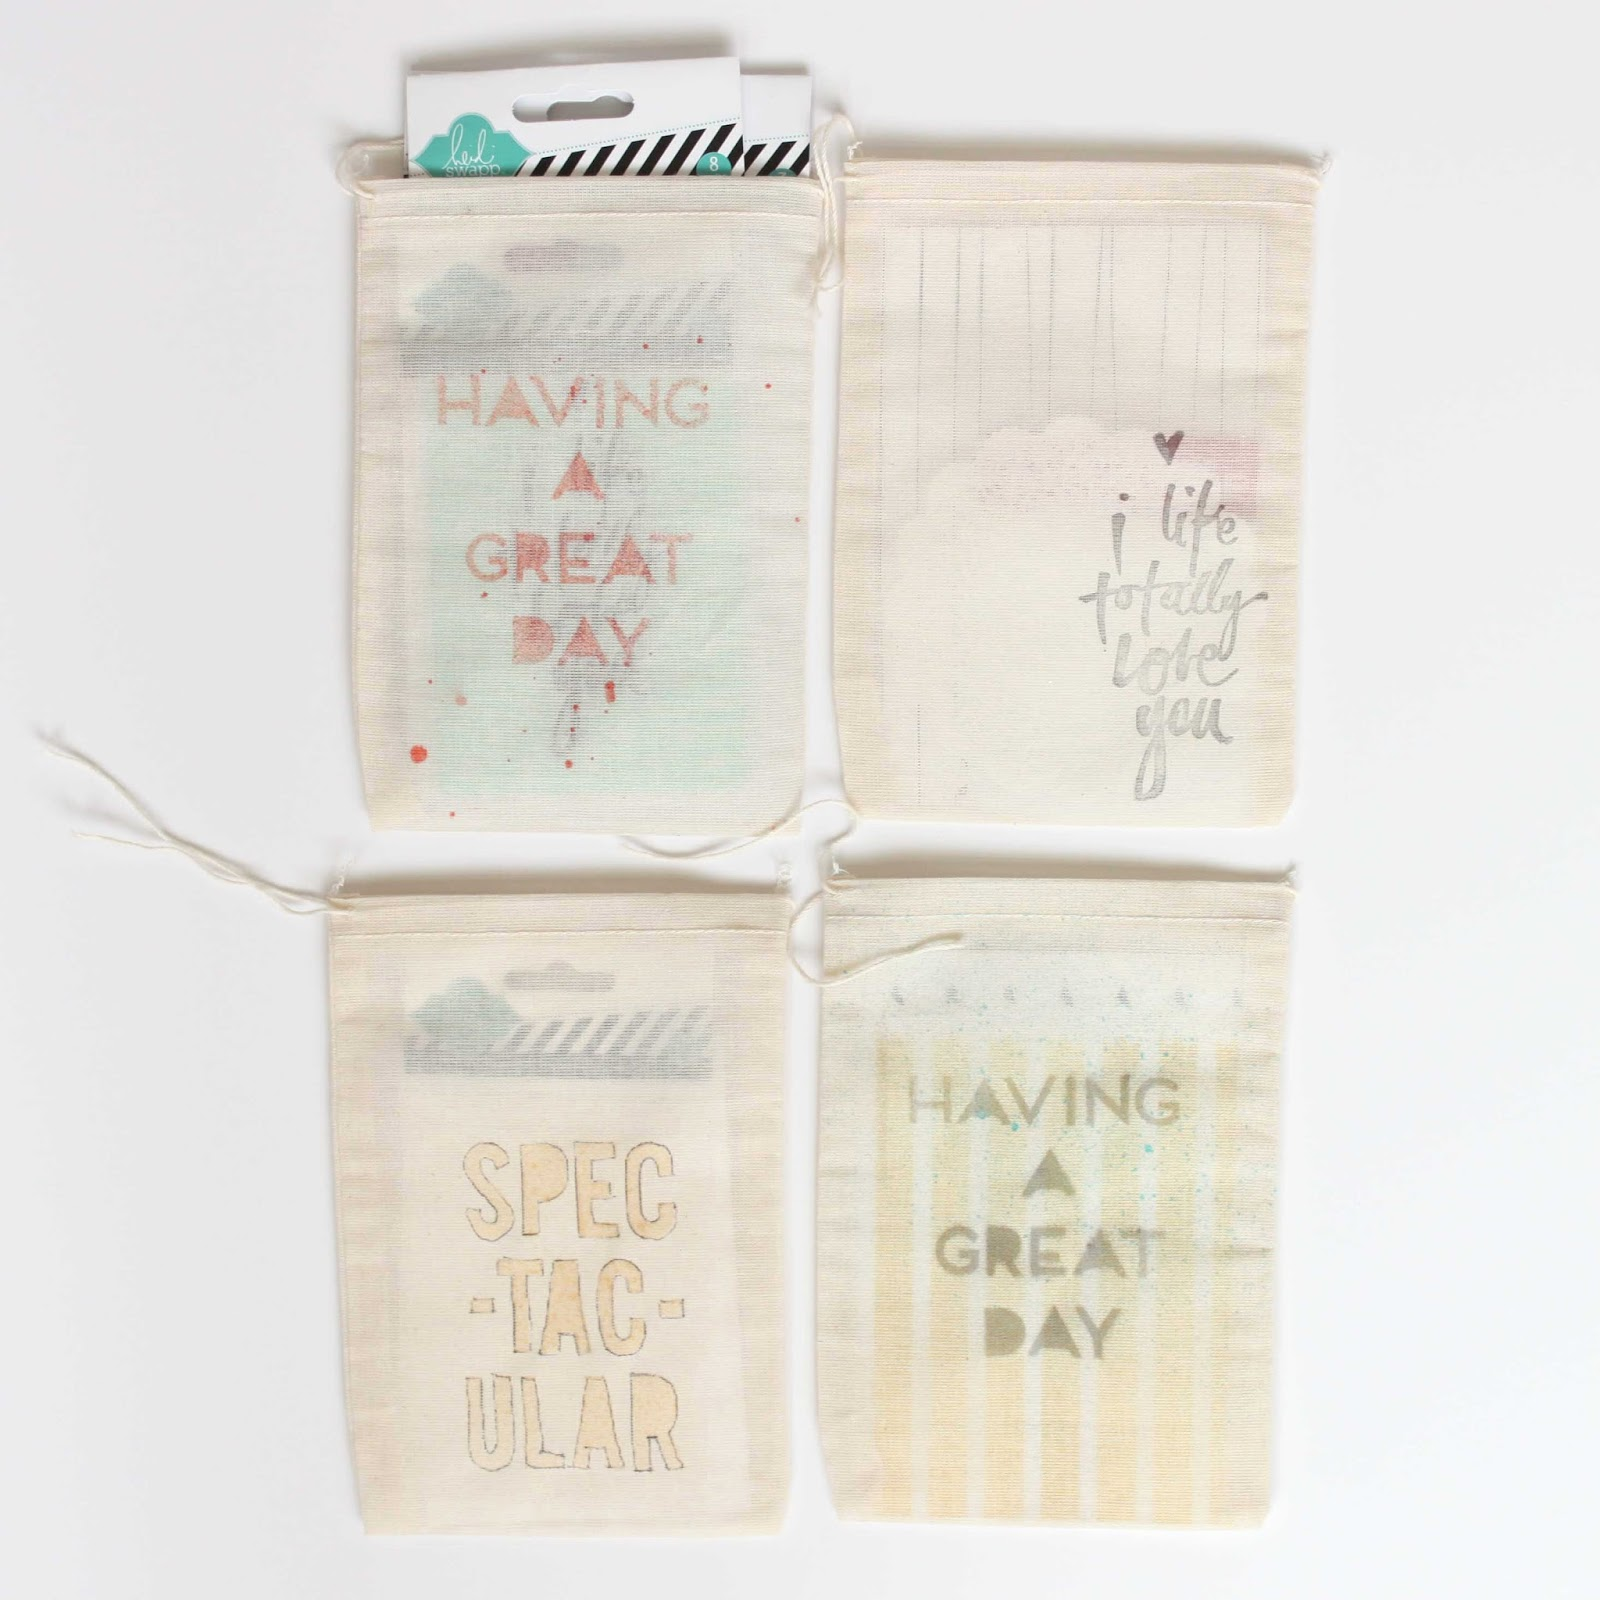 Stephanie Makes: Heidi Swapp: DIY Stenciled & Stamped Gift Bags